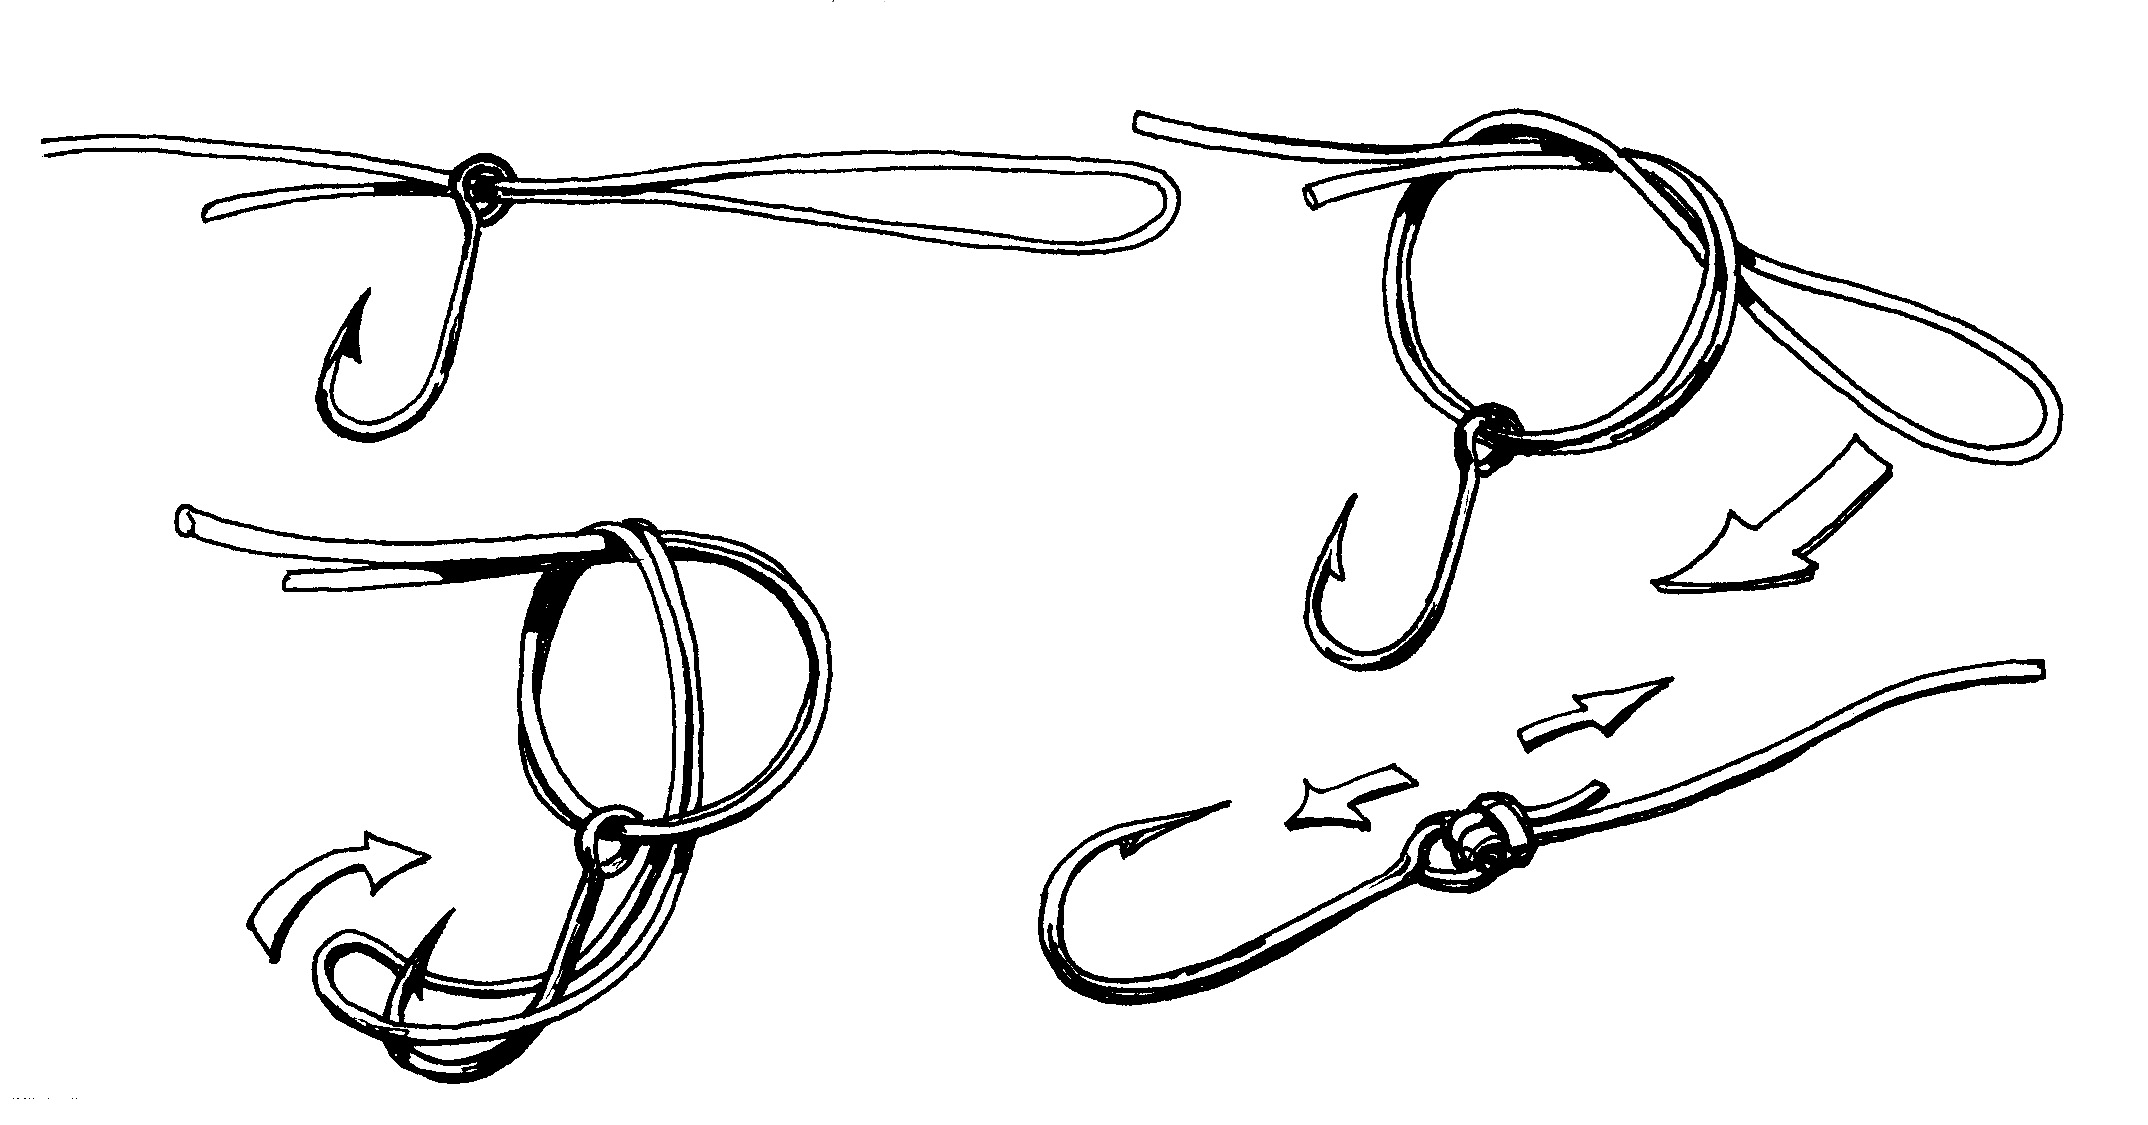 How to Tie a Palomar Knot to a Hook for Fishing